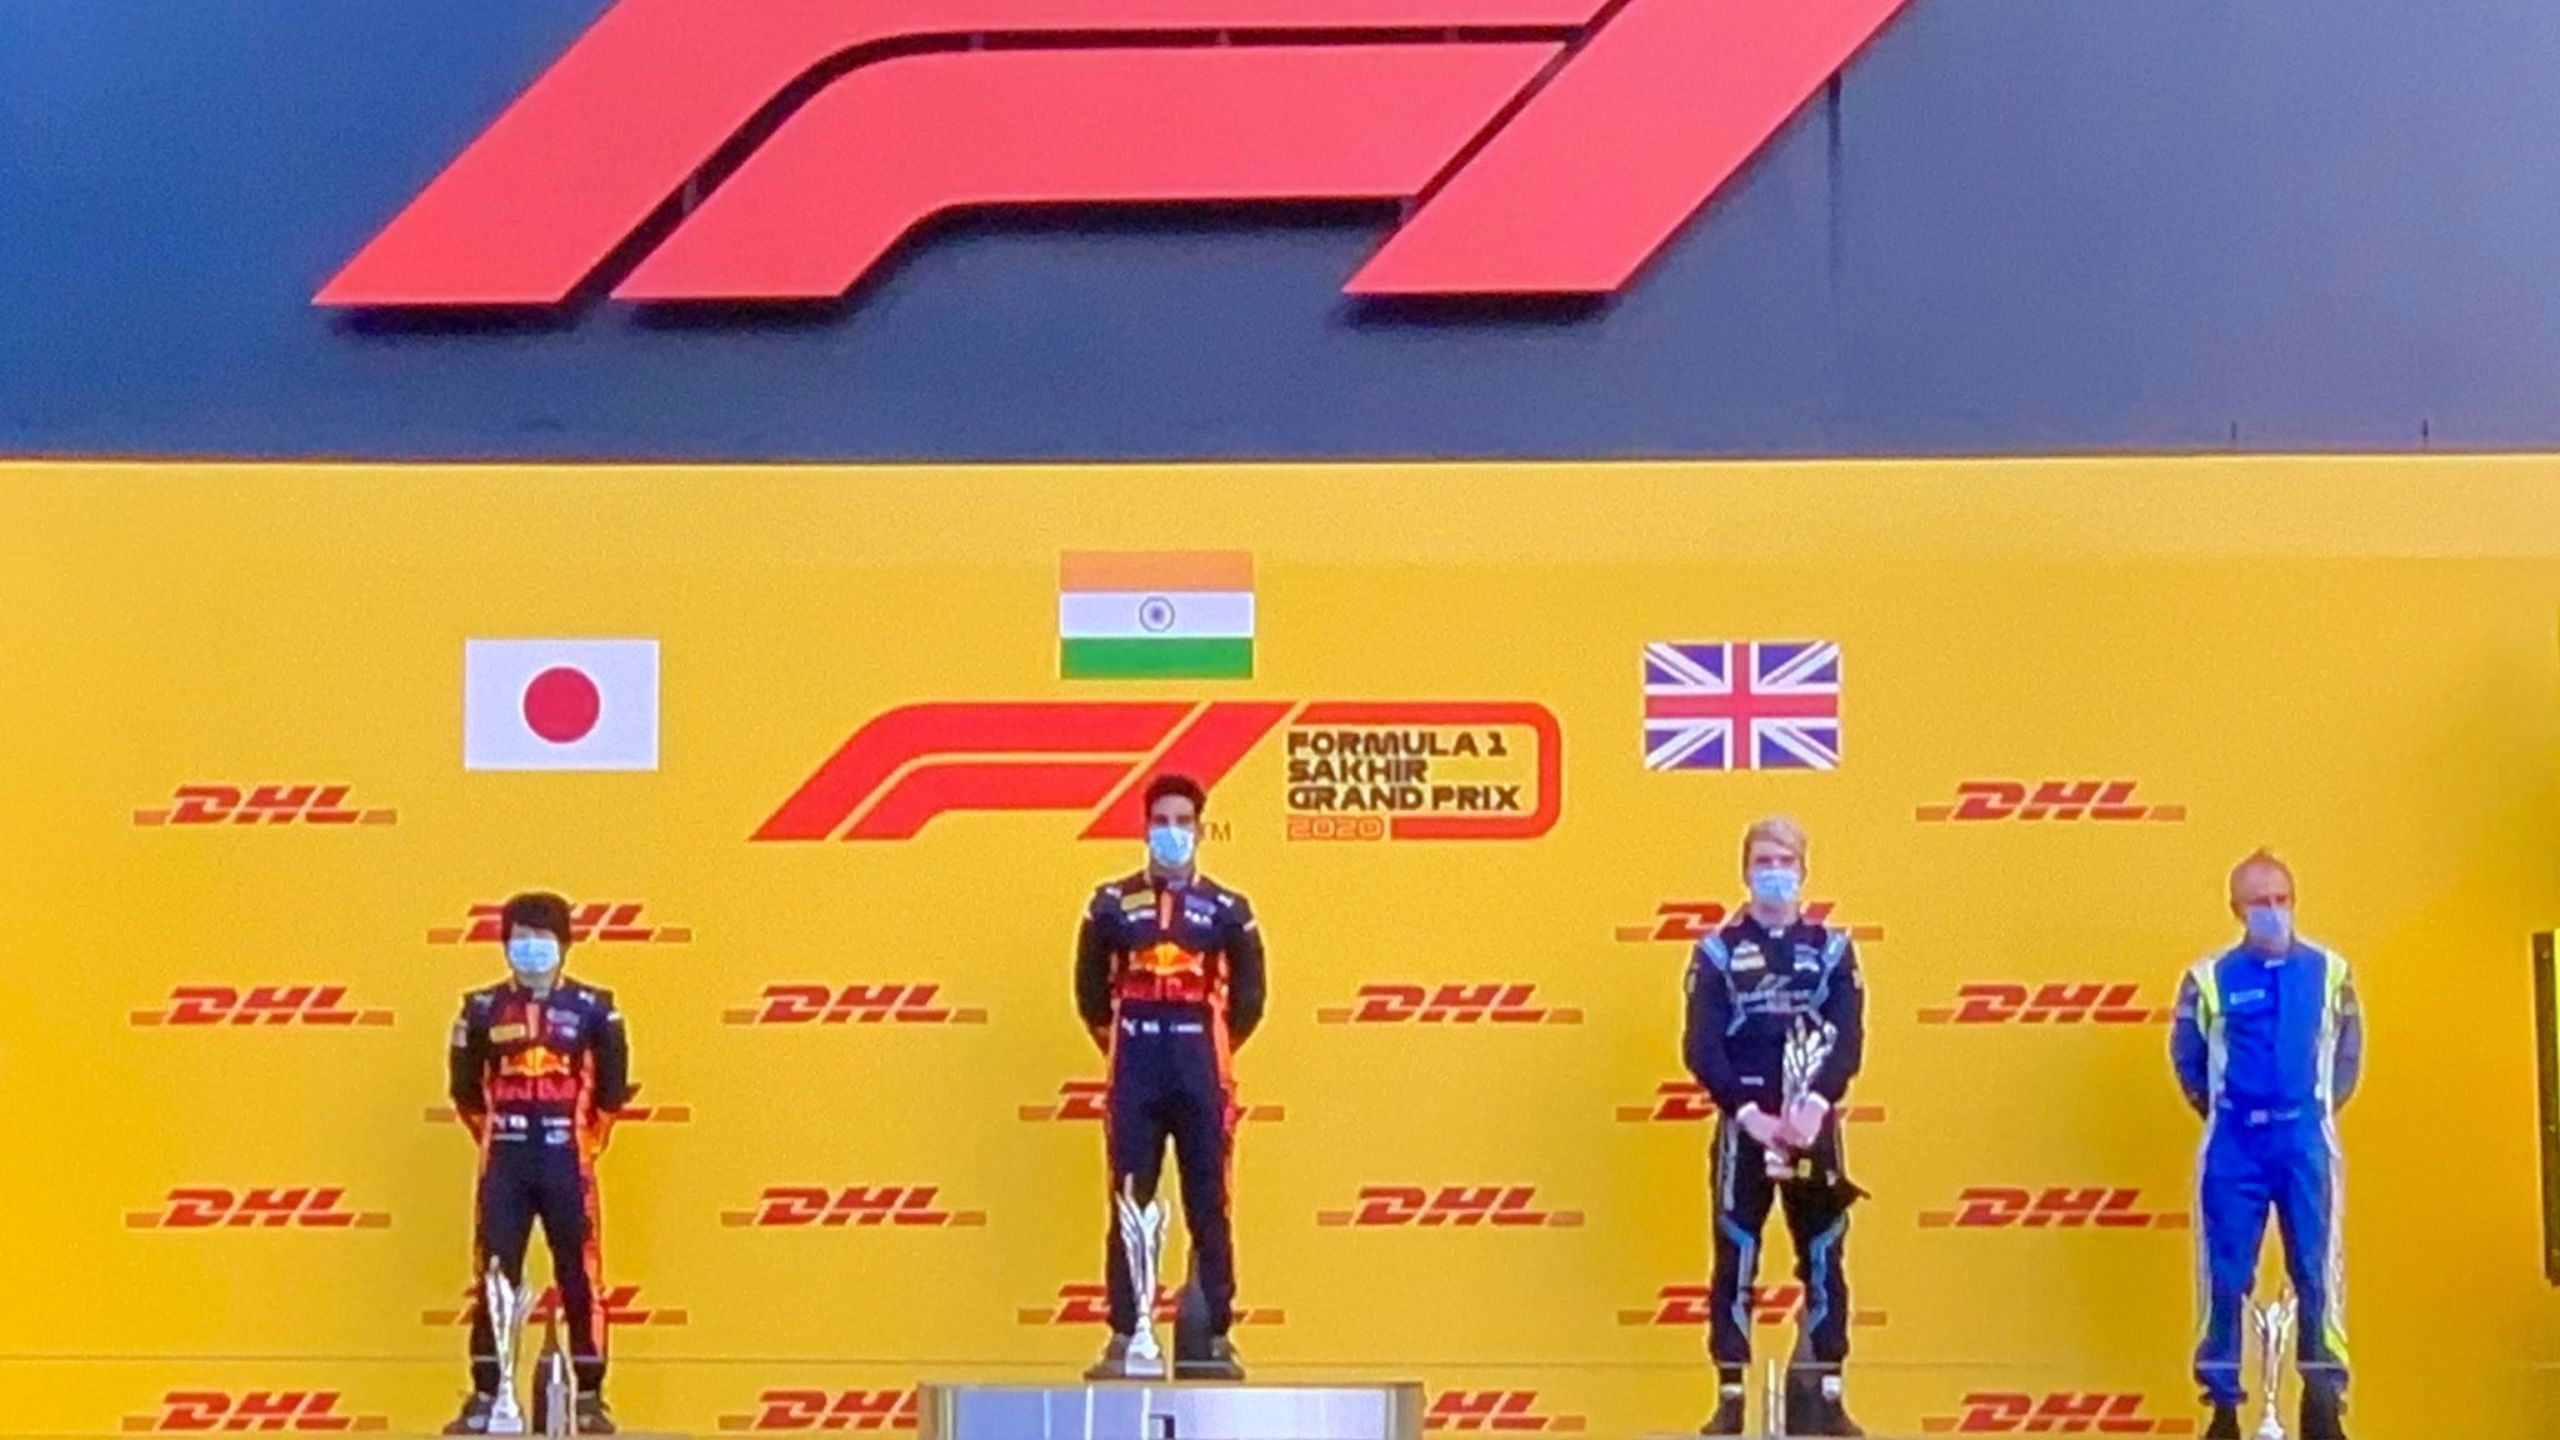 WATCH: Goosebumps as Indian National Anthem is played after Jehan Daruvala wins the F2 season finale at Bahrain